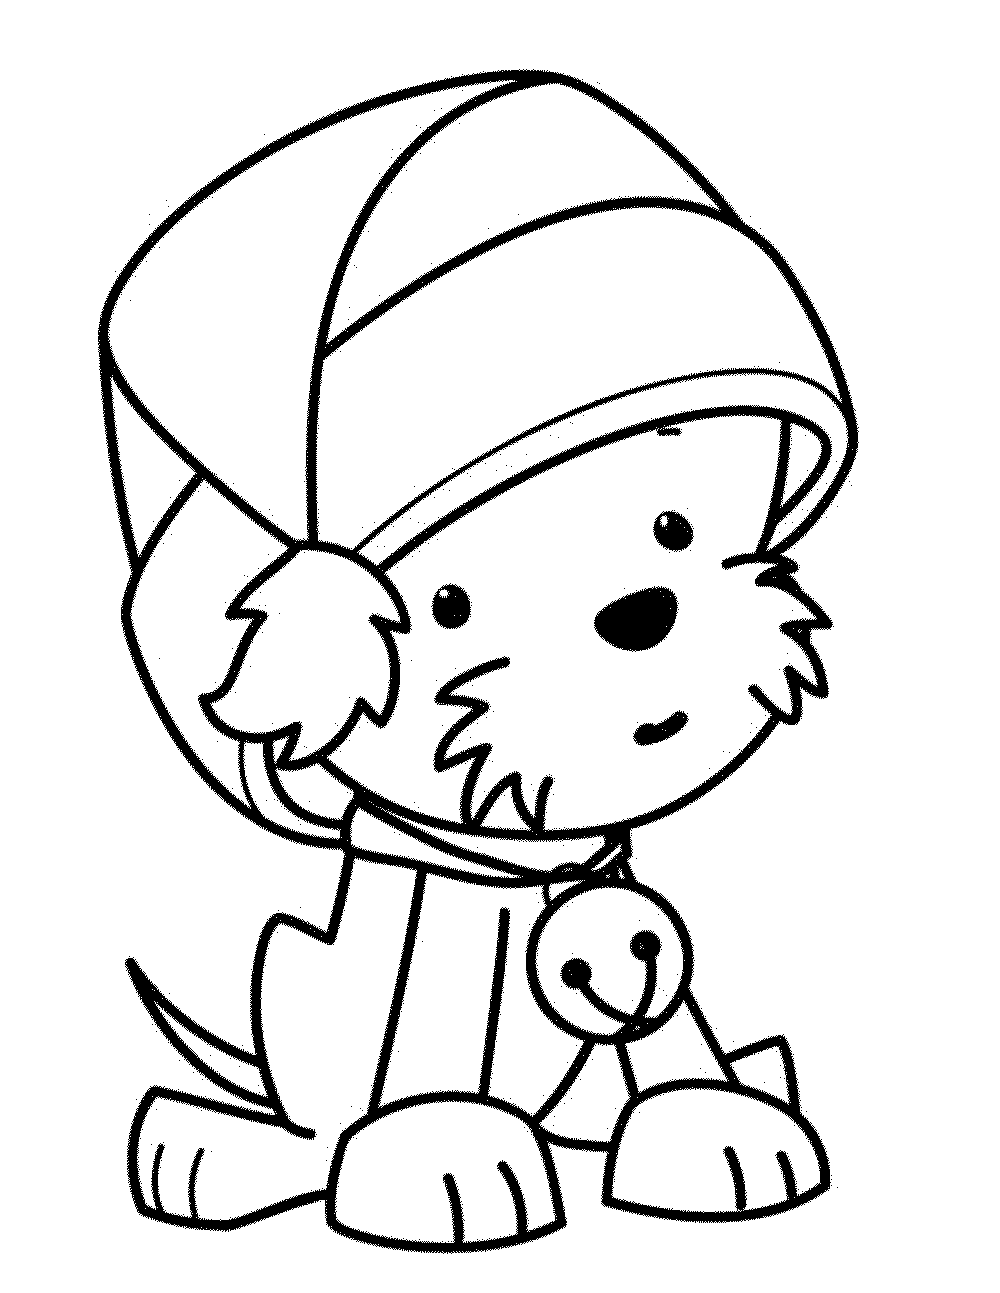 biscuit the dog coloring pages biscuit the dog coloring pages printable kids colouring biscuit the coloring pages dog